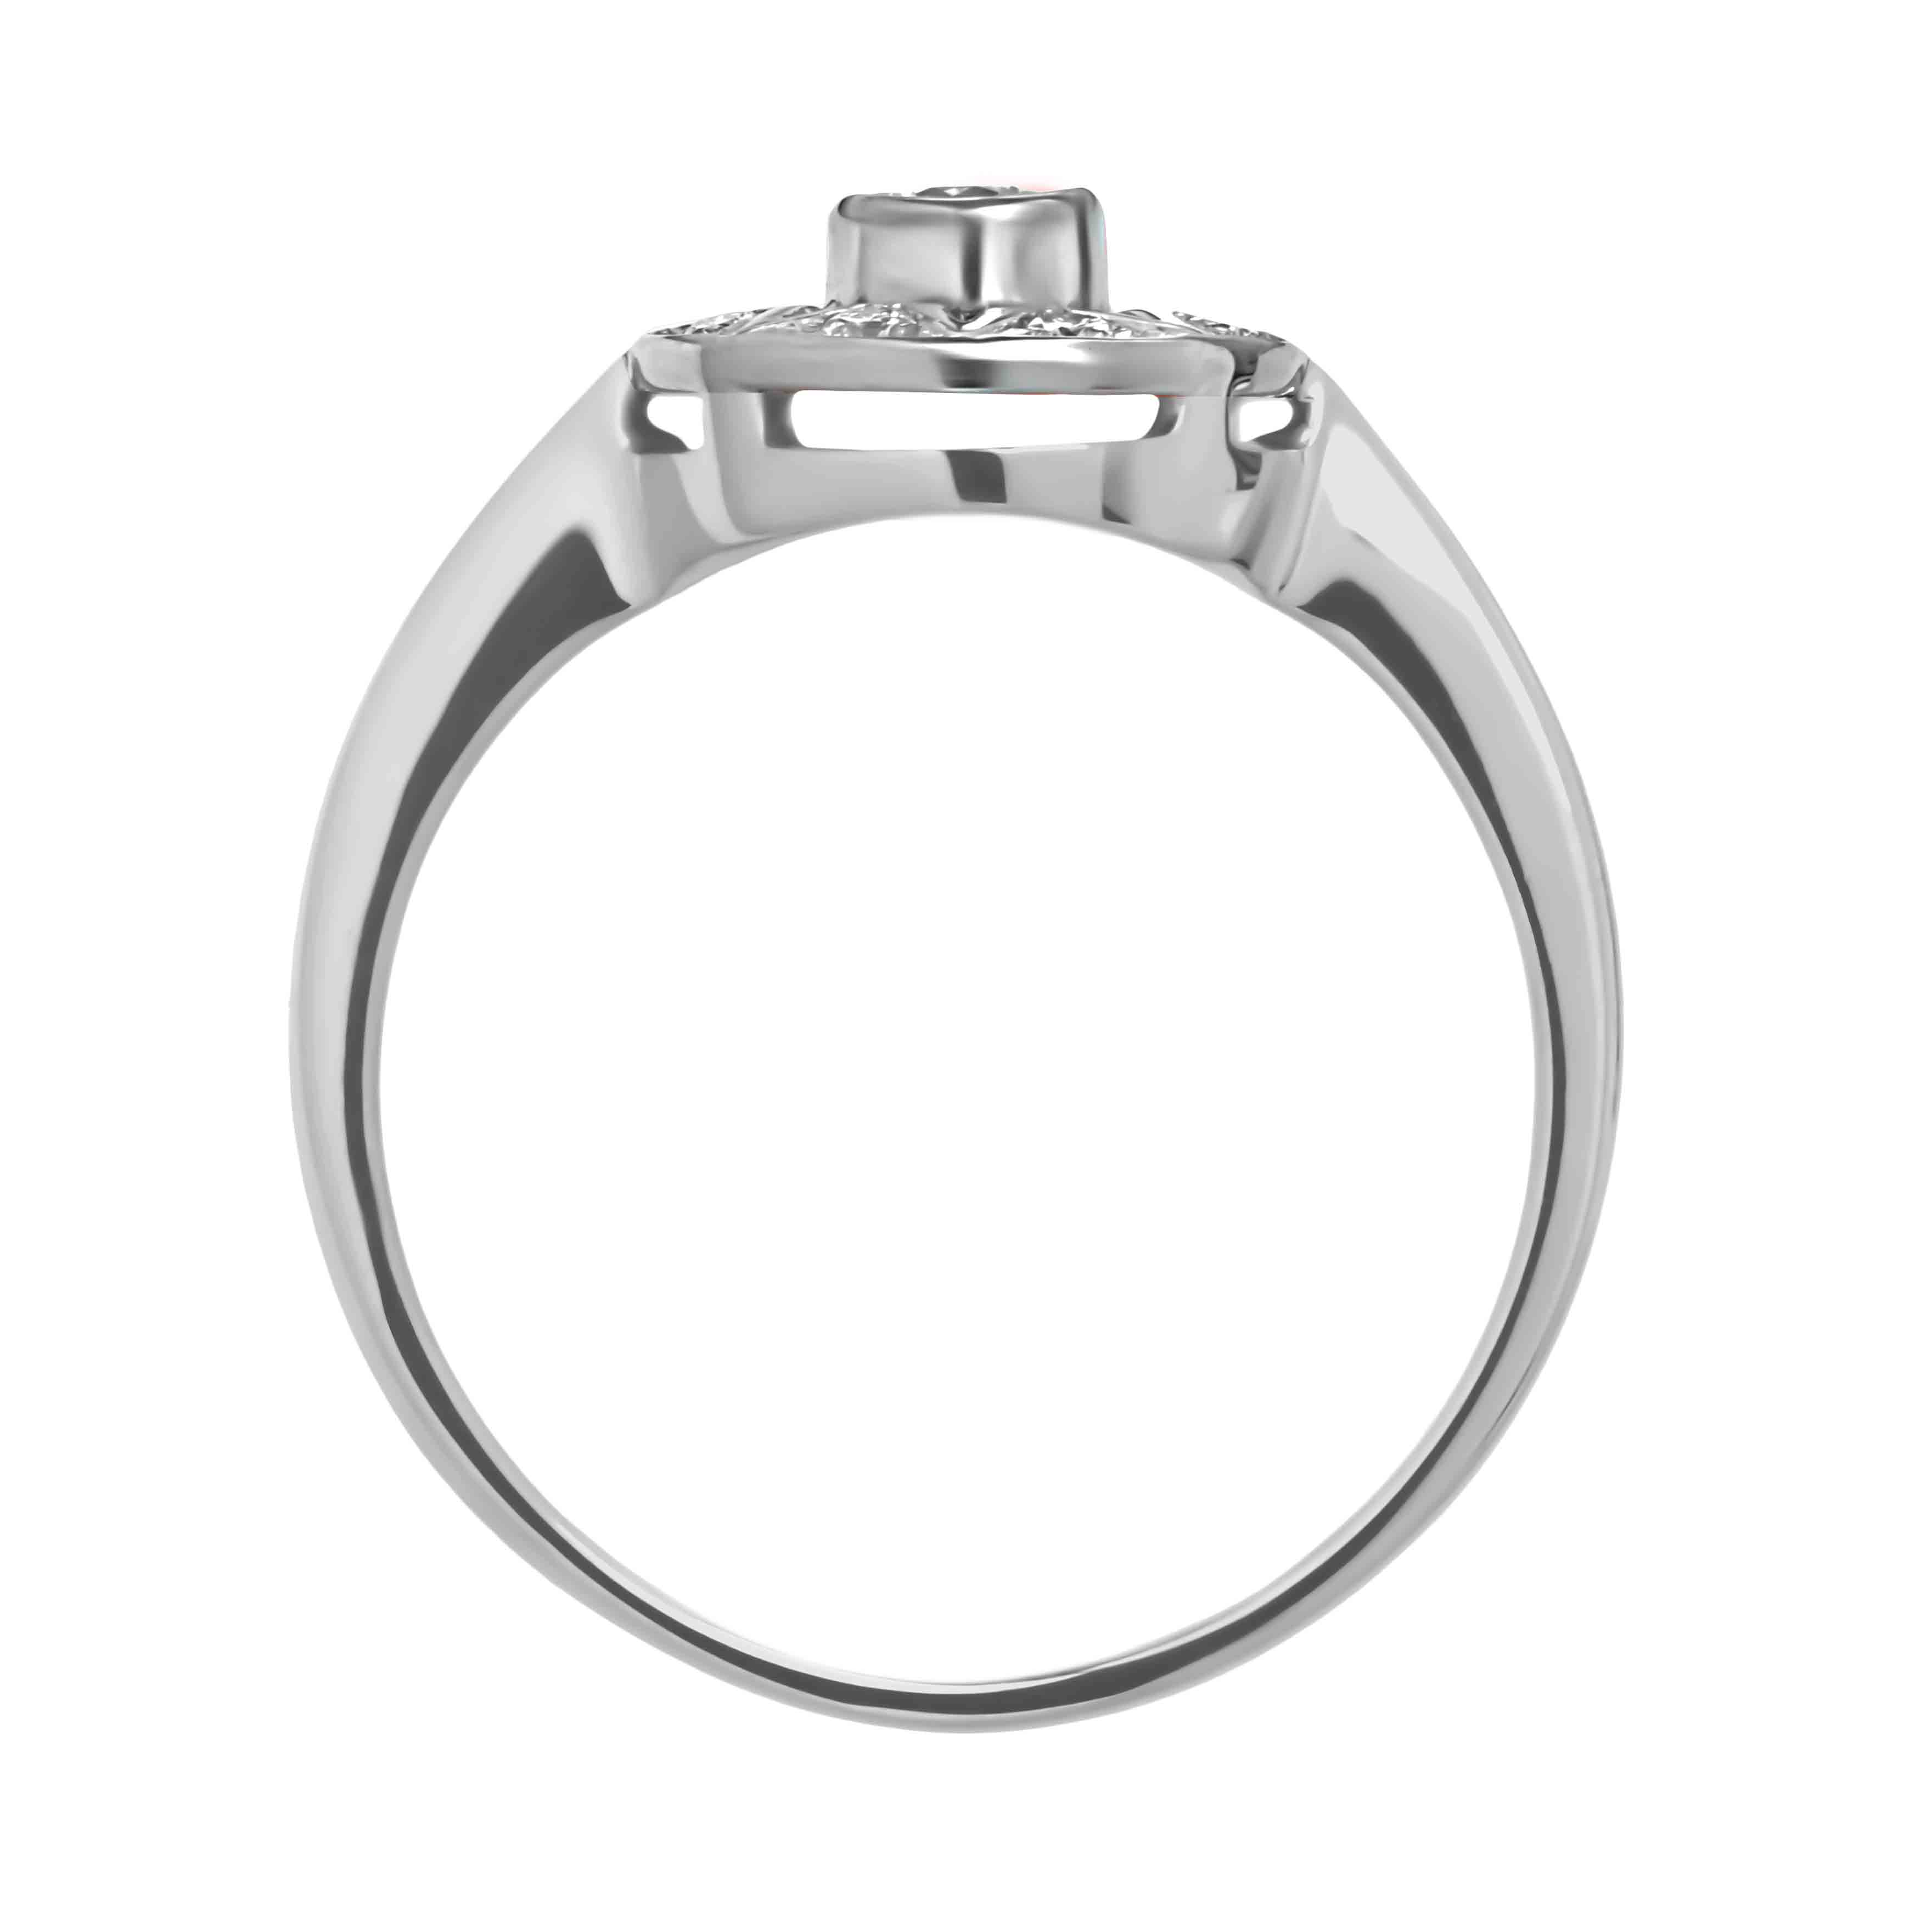 'Say YES to Bridal' Diamond Engagement Ring in 14kt White Gold. View 3